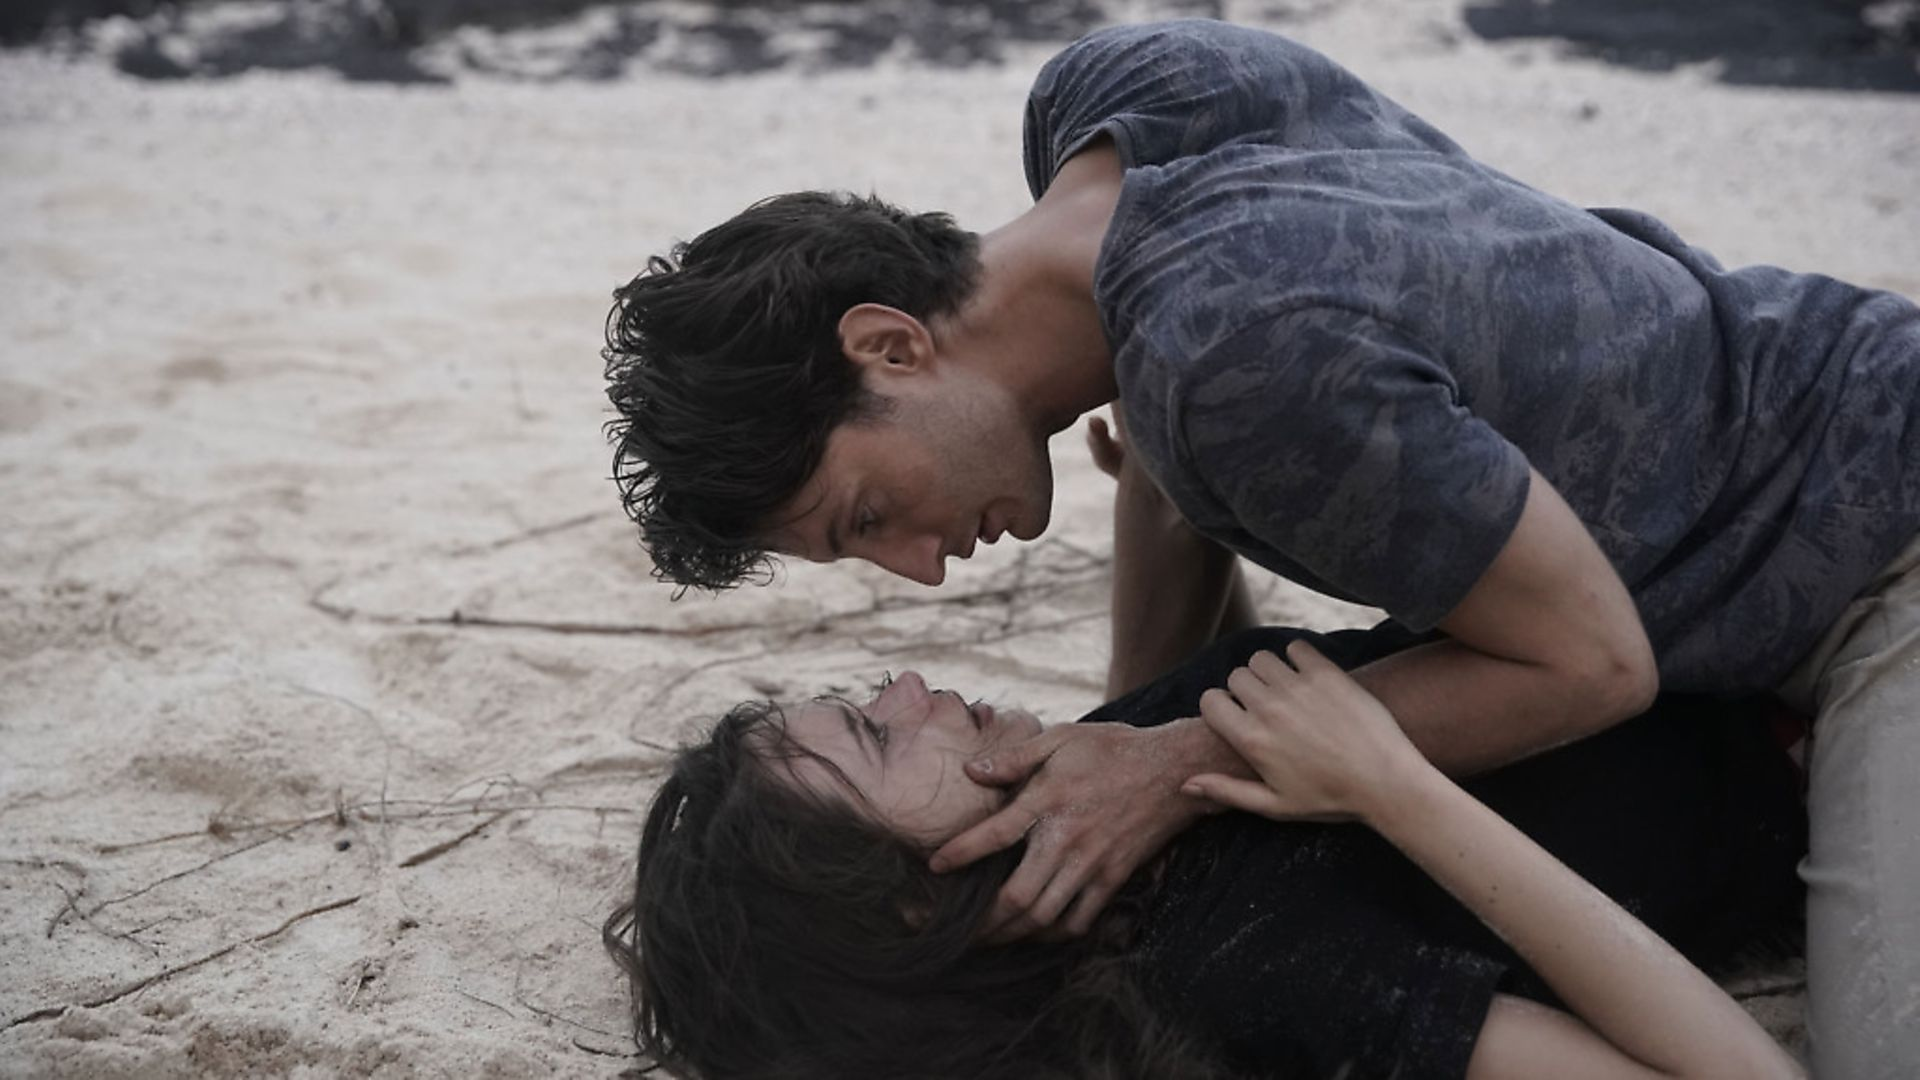 Pierre Niney and Stacy Martin in Amants. Photo: Roger Arpajou - Credit: Archant